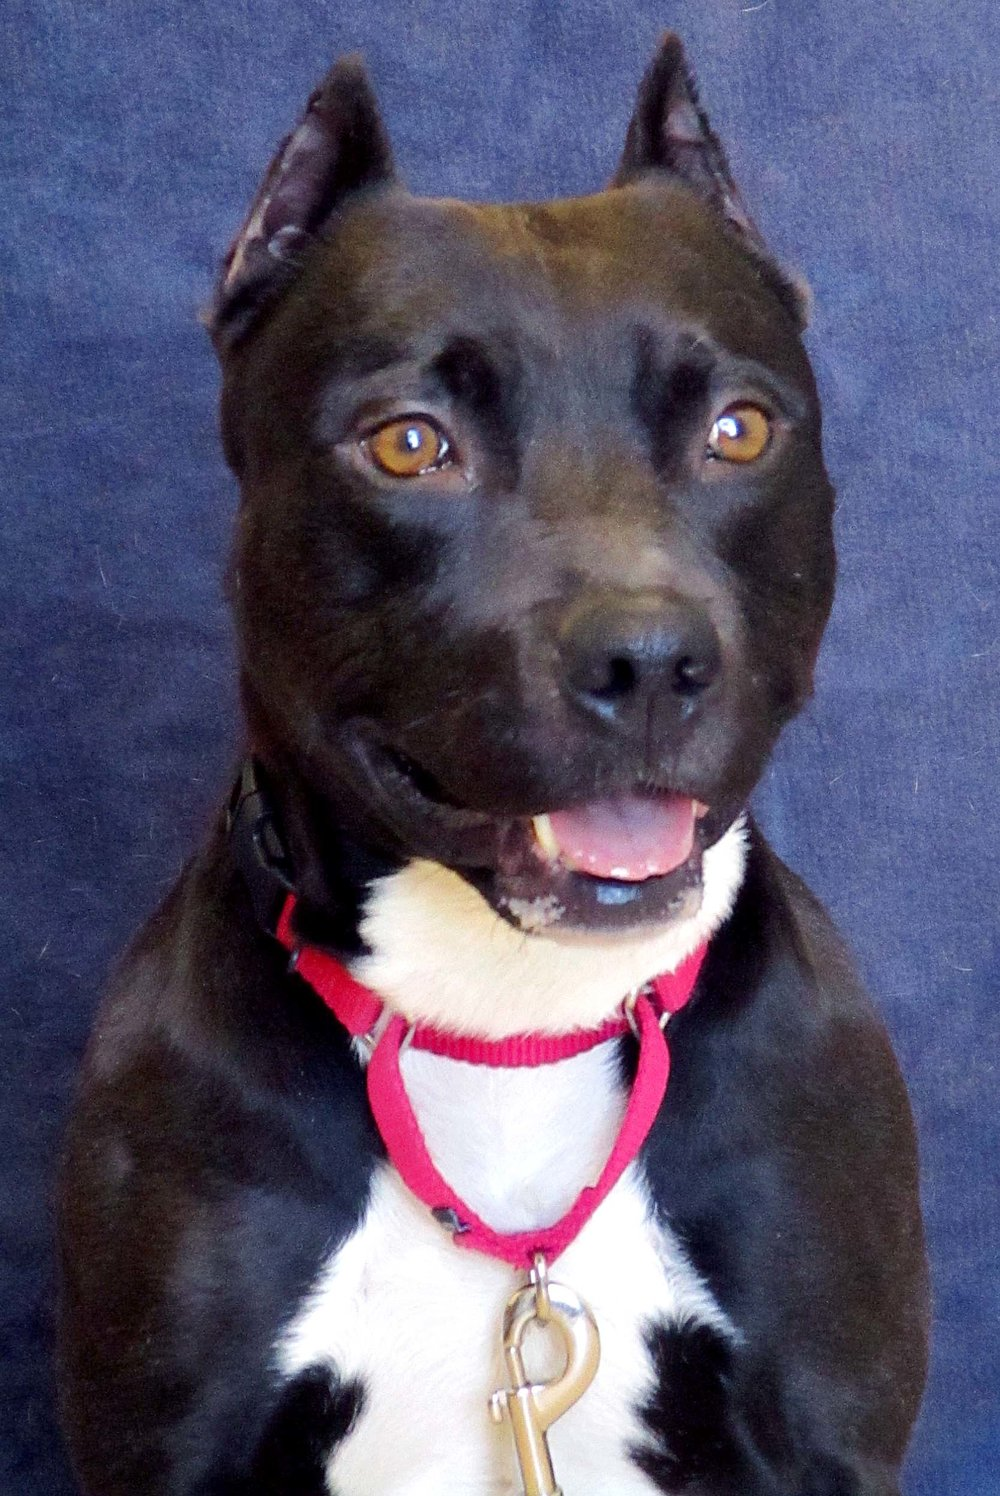 Morty is a 2 year old Pit Bull Terrier. HAWS is recommending households with children 10 and older. He would do best being the only pet and hogging all the attention in the home. He is very athletic and will lean into petting.